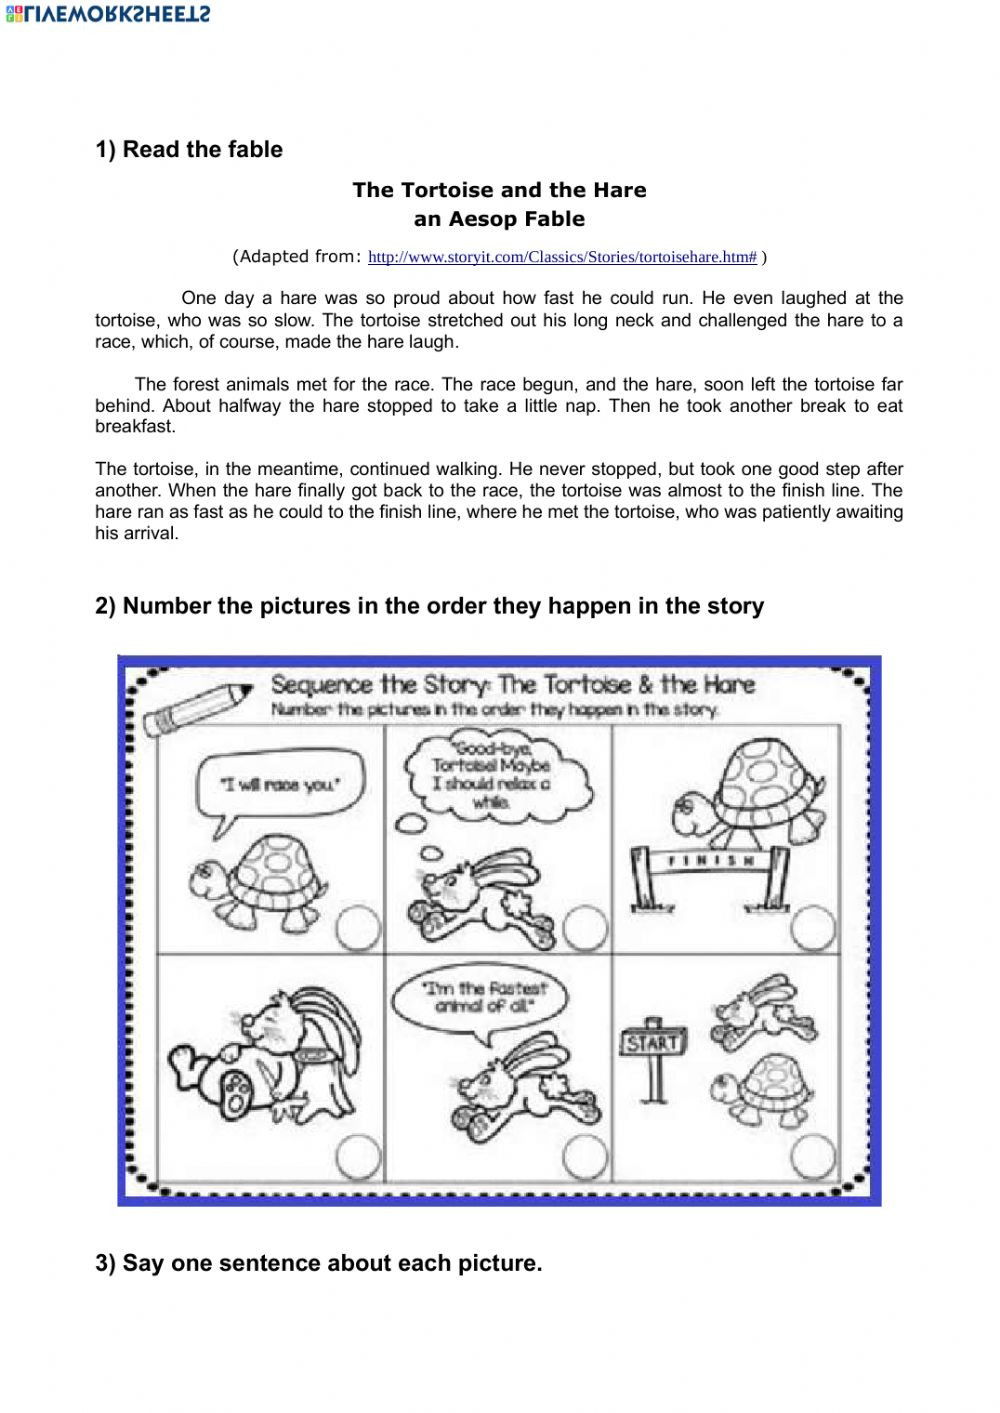 4th Grade Sequencing Worksheets the tortoise and the Hare Picture Sequencing Interactive